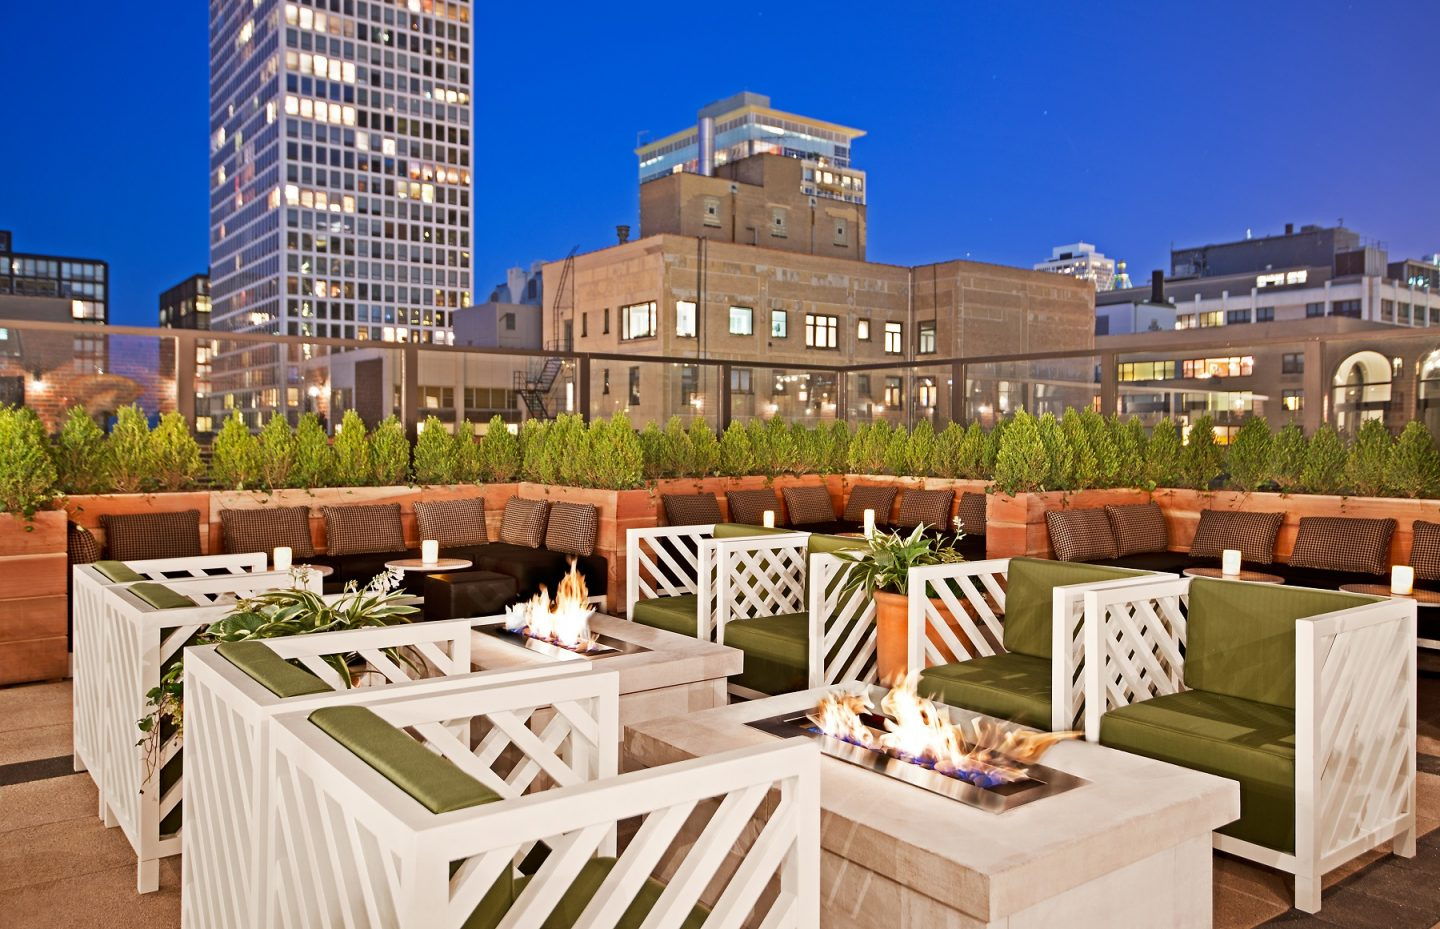 best rooftop bars in chicago, best bars in Chicago, chicago guide, what to do in Chicago, travel guide, Jennifer Worman, Red Soles and Red Wine, drummer chicago